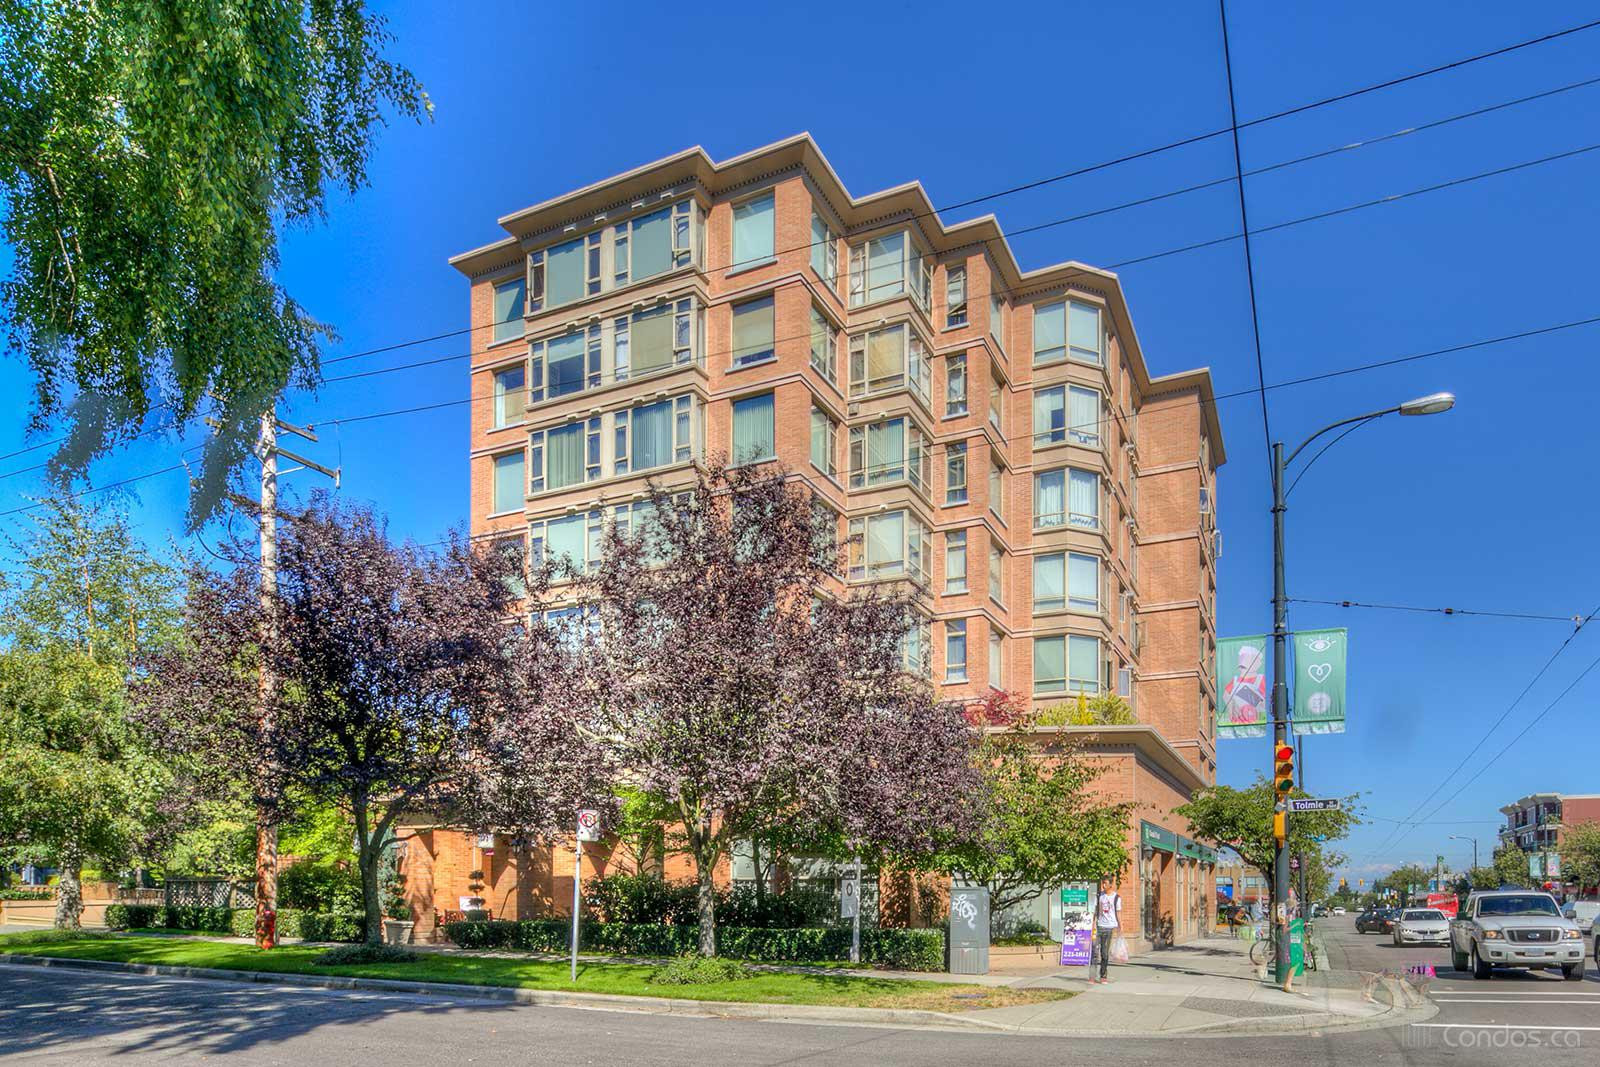 Point Grey Place at 2580 Tolmie St, Vancouver 1